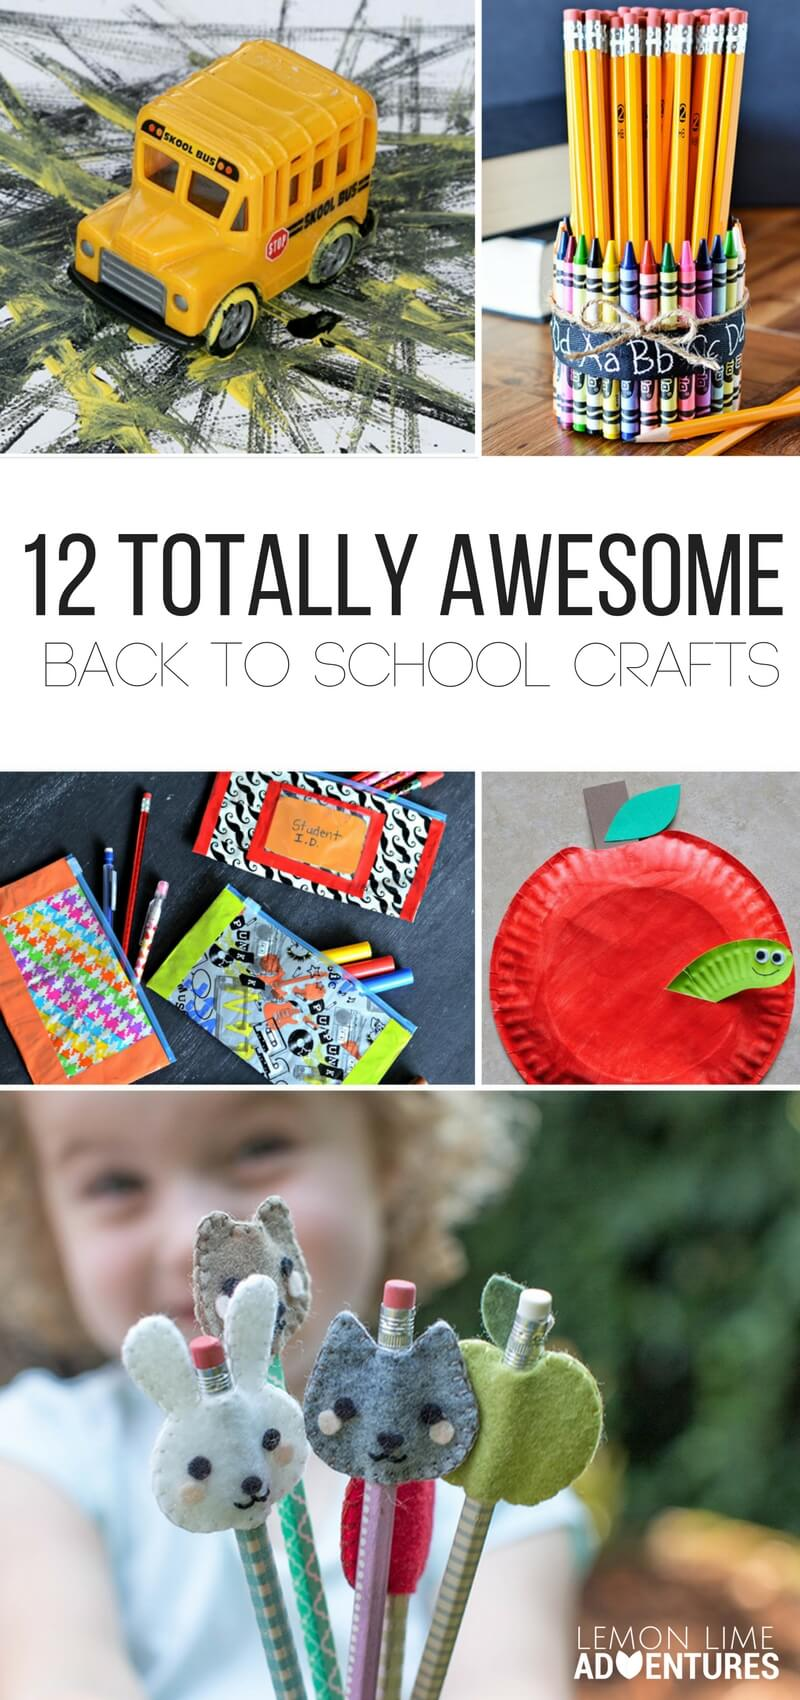 12 Totally Awesome Back to School Crafts!